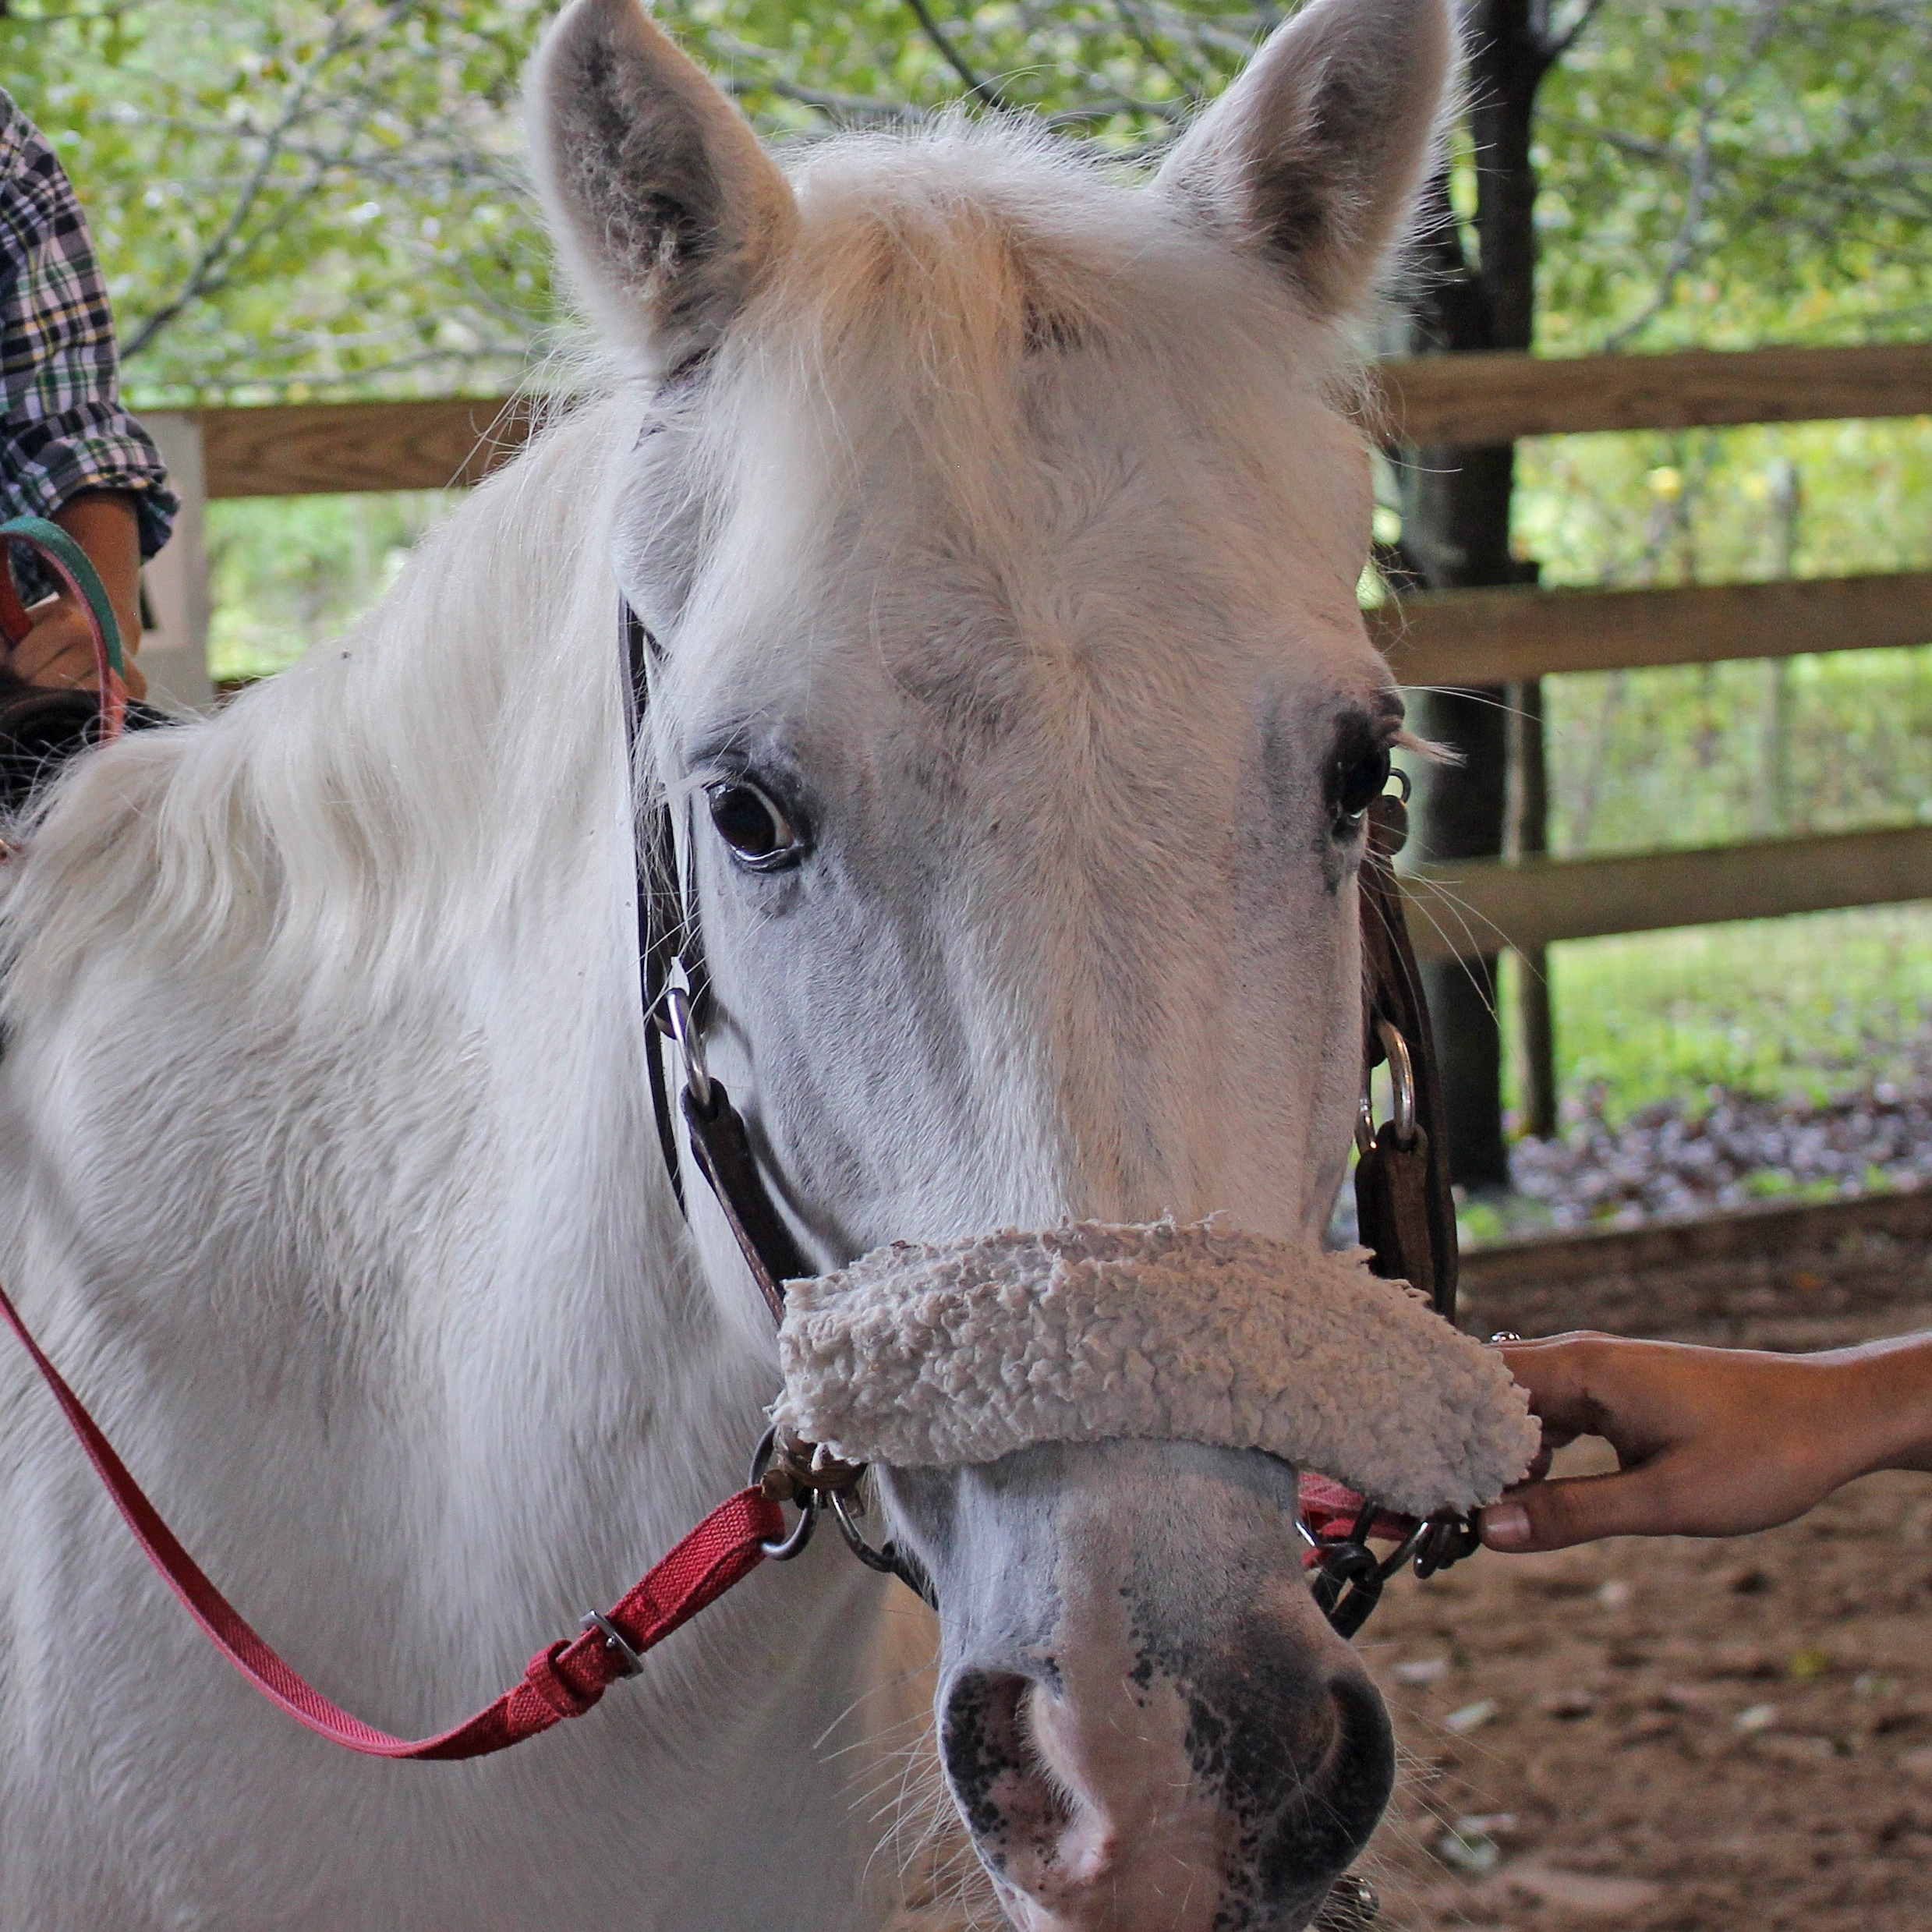 Pony - Her registered name is Princess Polo but the Defelice Family fondly calls her